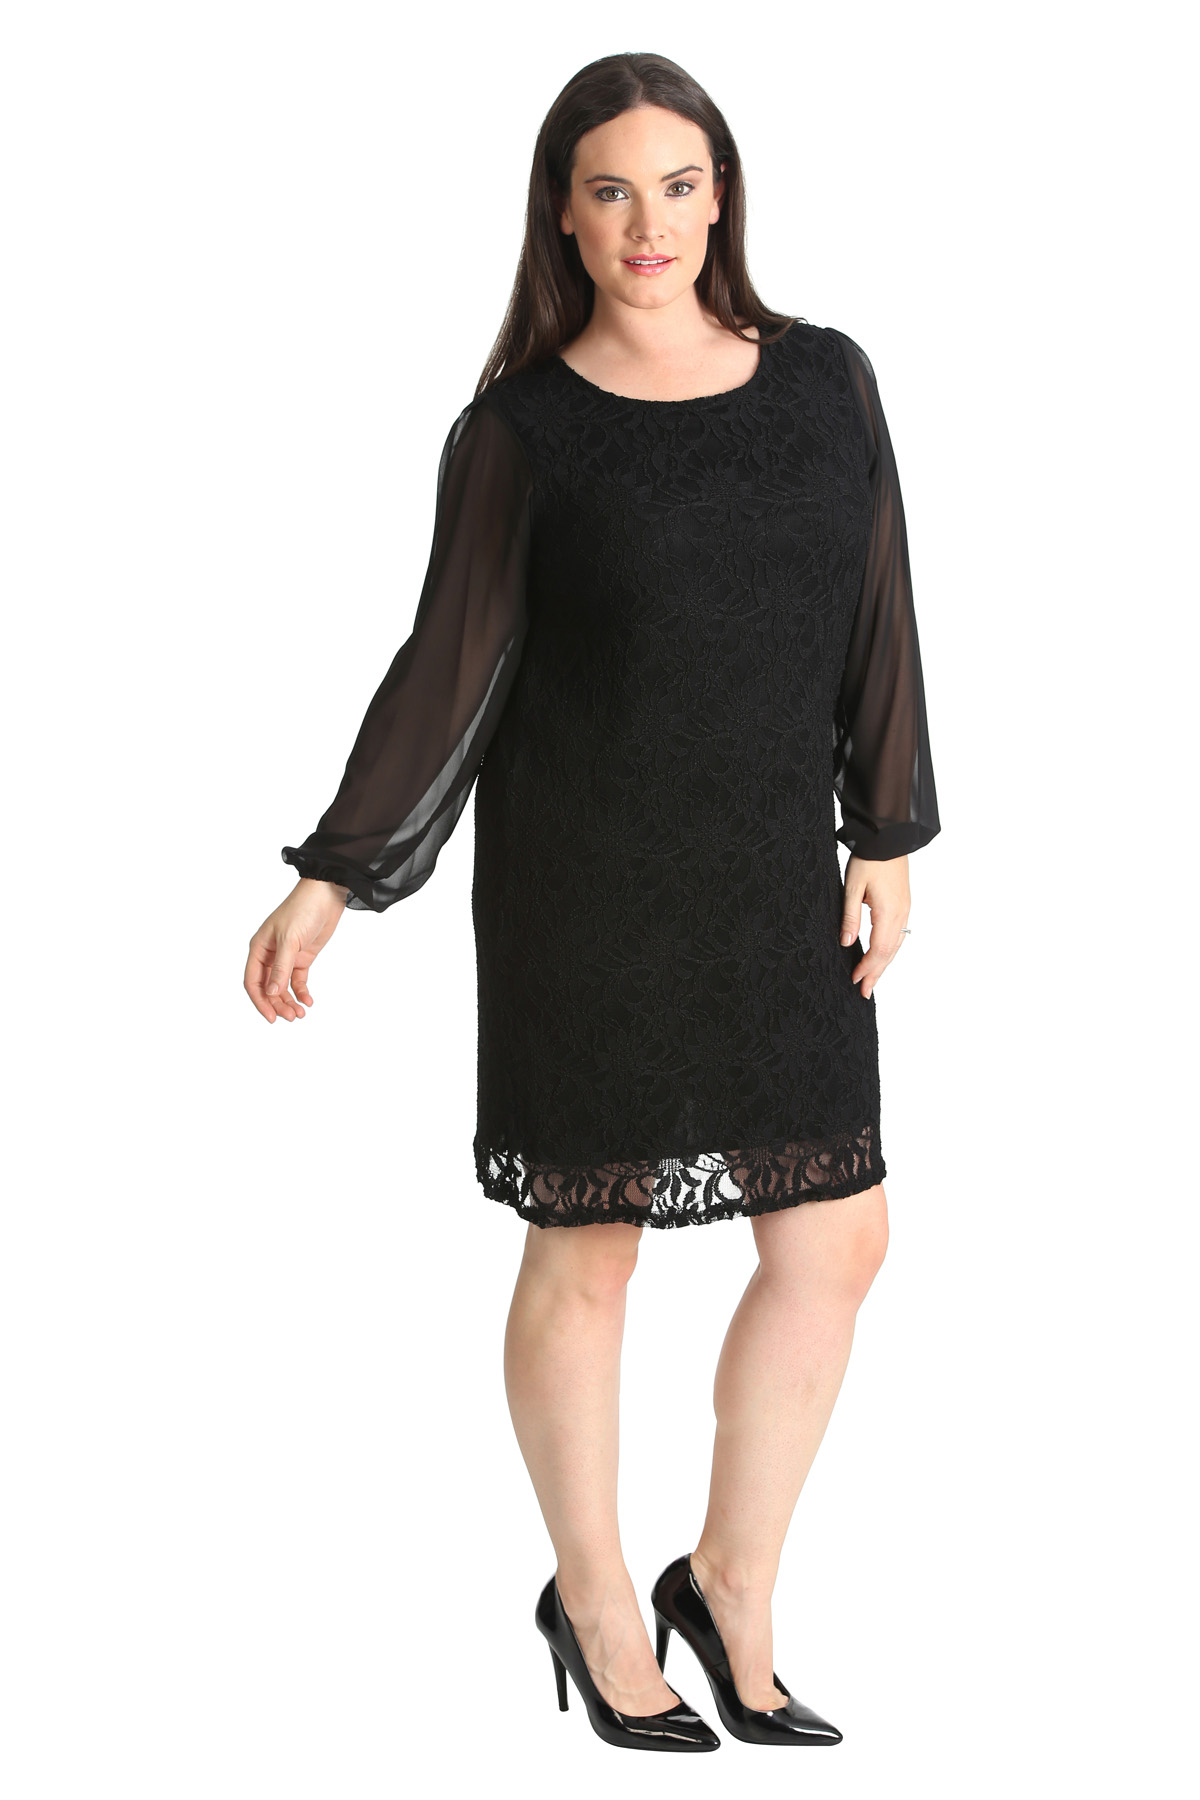 New Ladies Plus Size Dress Womens Floral Lace Chiffon ...